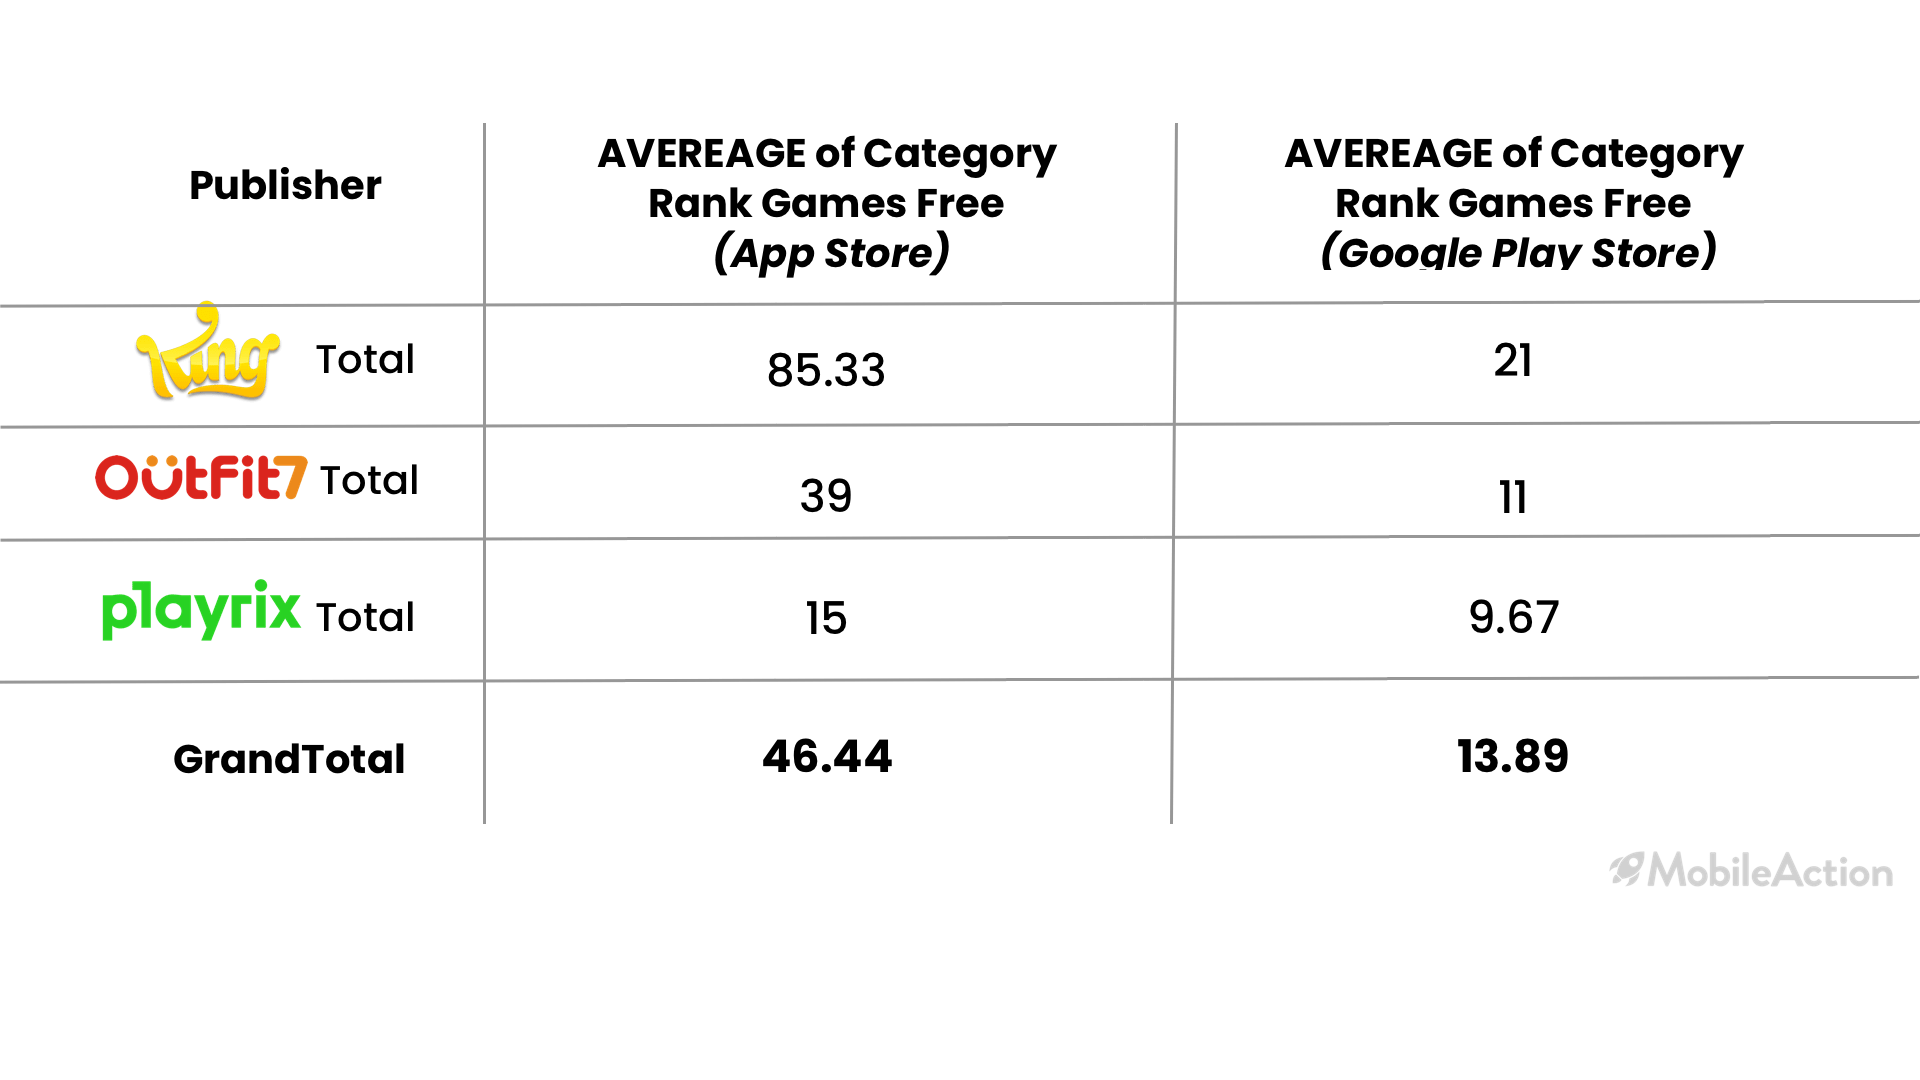 category rankings averages